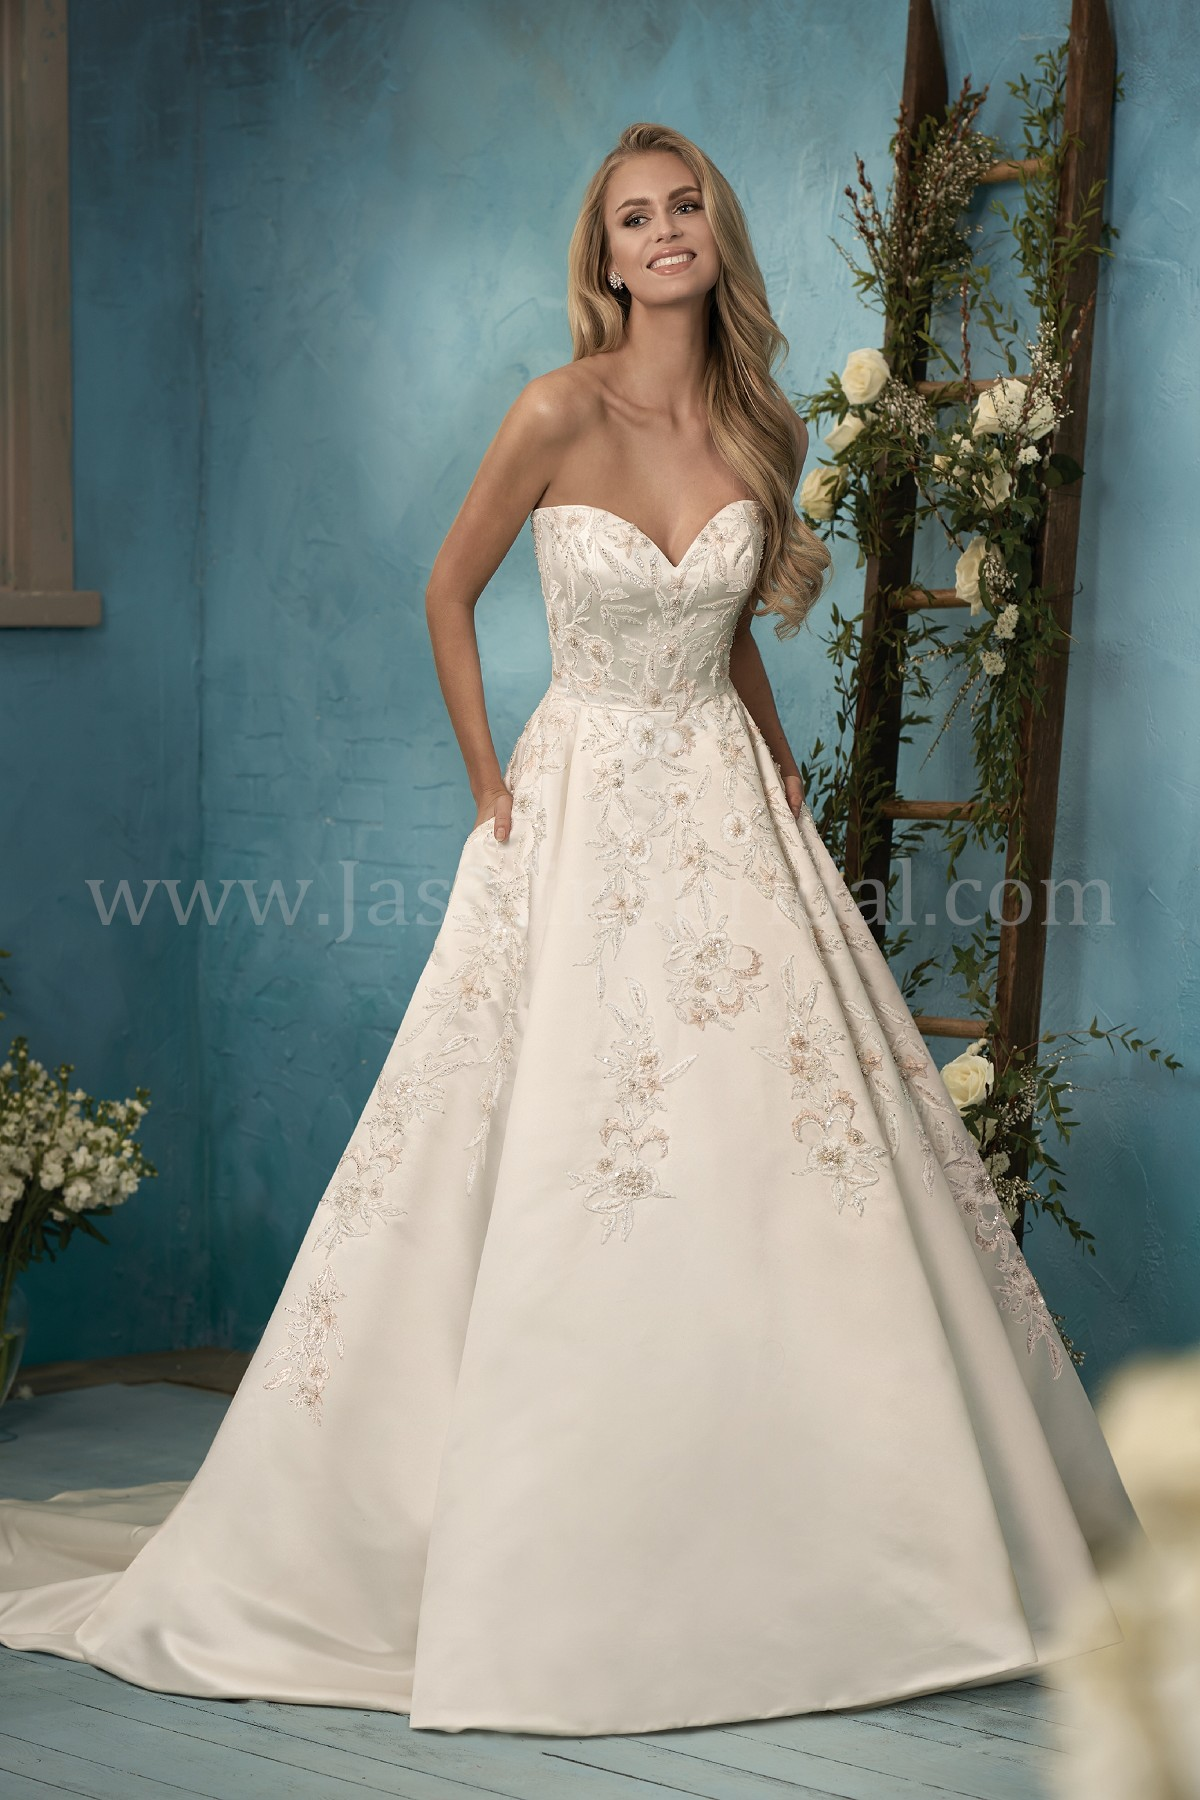 Jasmine Bridal | Designer Wedding Dresses